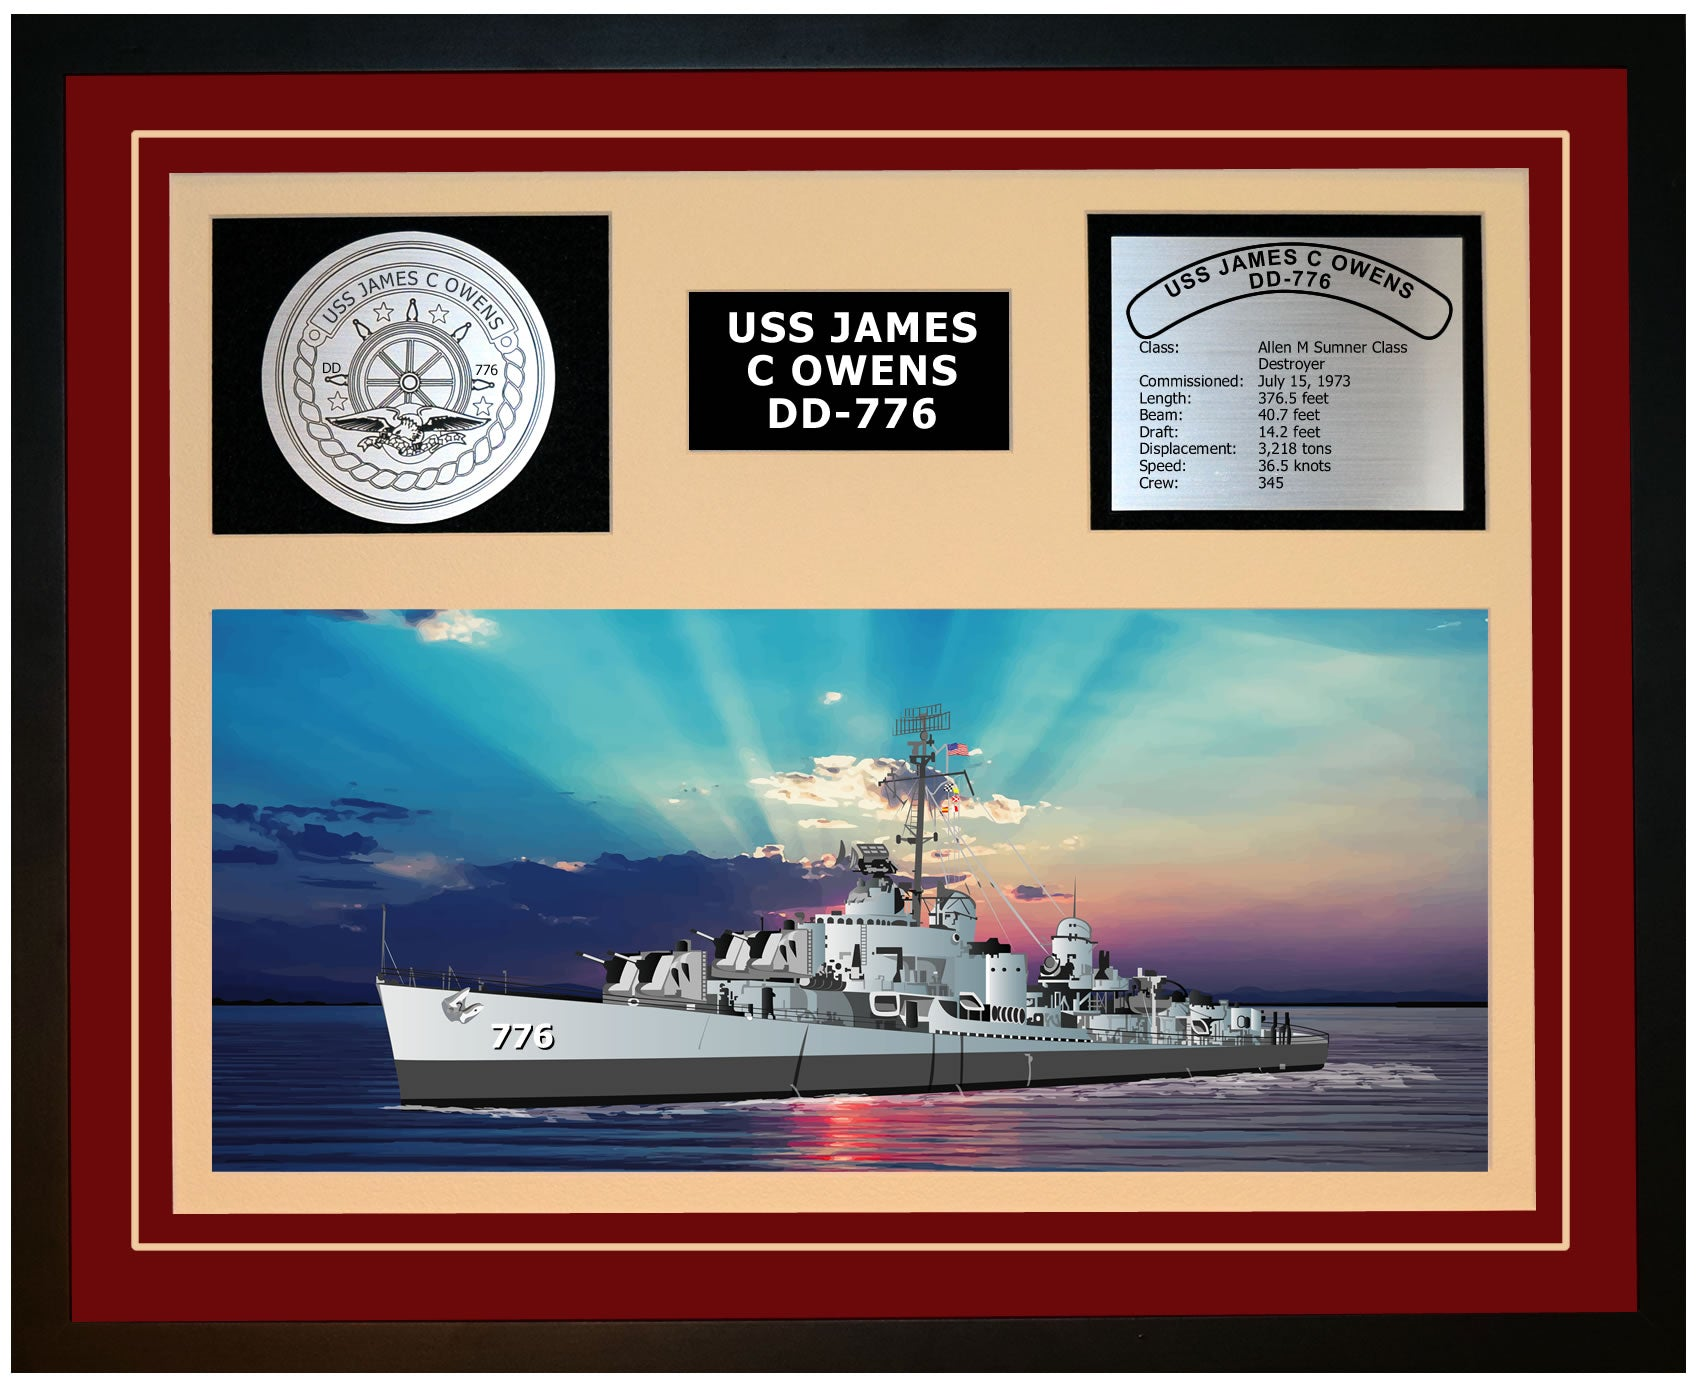 USS JAMES C OWENS DD-776 Framed Navy Ship Display Burgundy